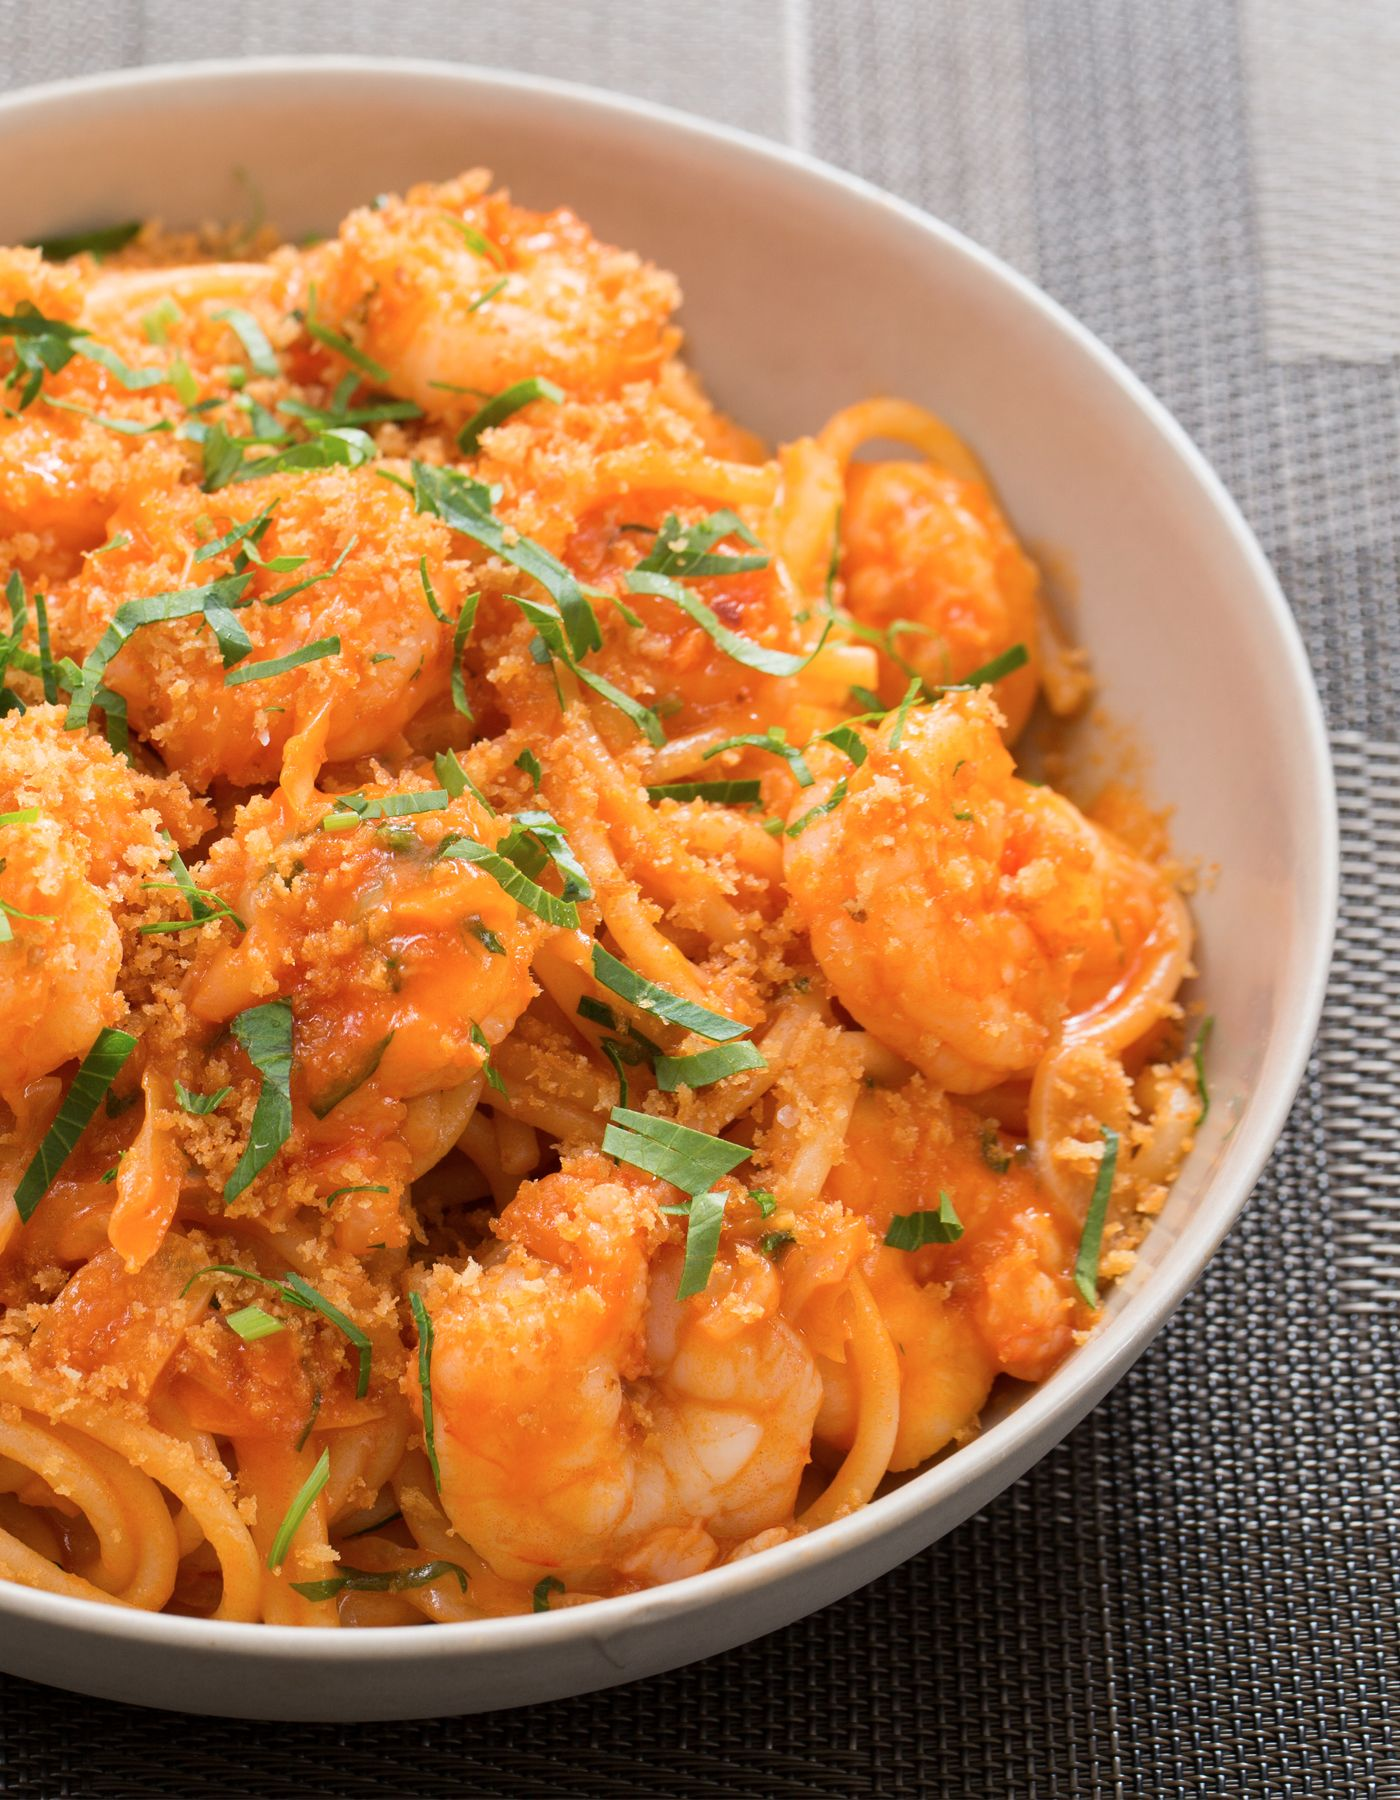 Blue apron udon catfish - Spicy Shrimp Spaghetti With Cabbage Toasted Breadcrumbs Shrimp Spaghettiblue Apronspicy